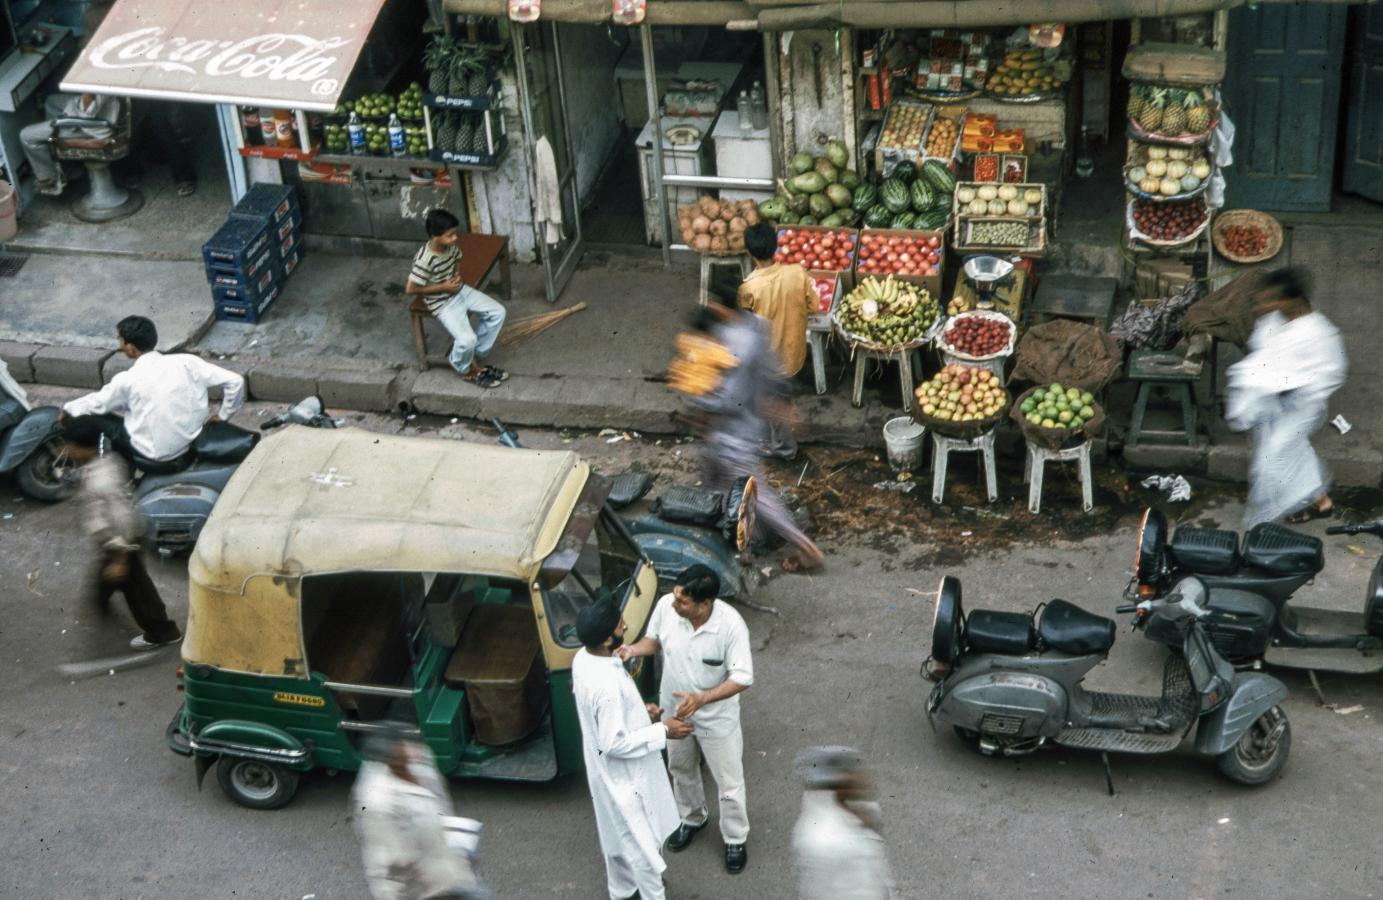 street-with-rickshaw-from-above-delhi-2003